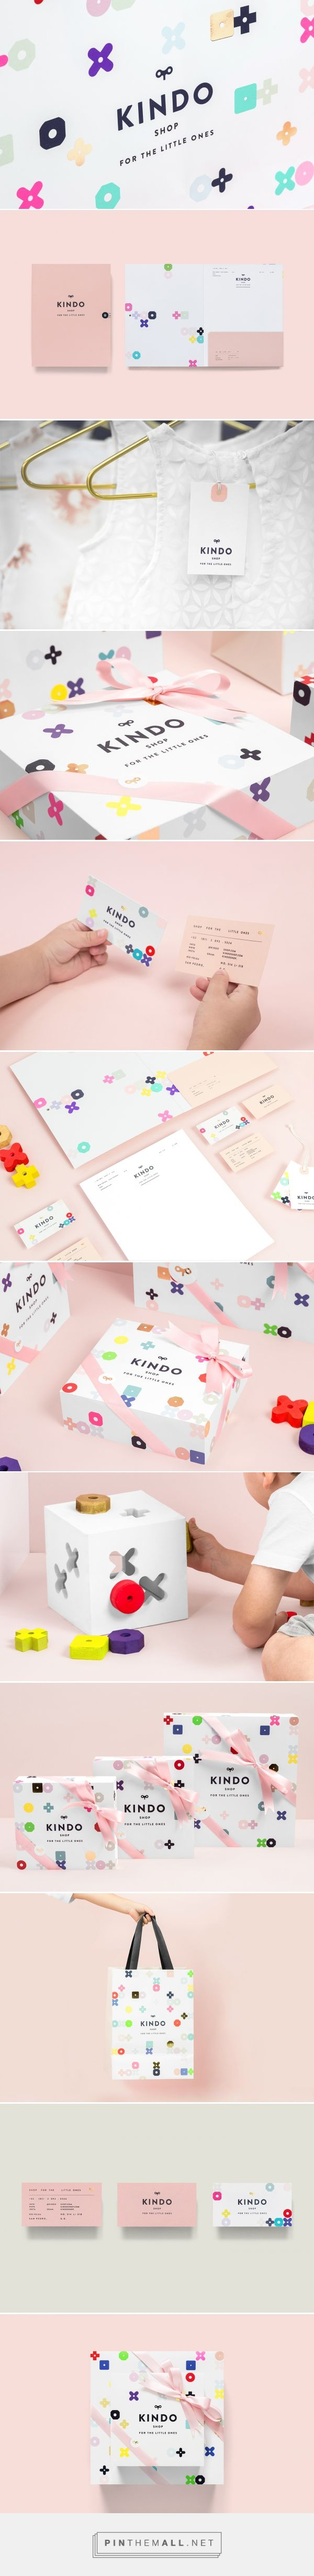 Kindo on Behance | Fivestar Branding – Design and Branding Agency & Inspiration Gallery